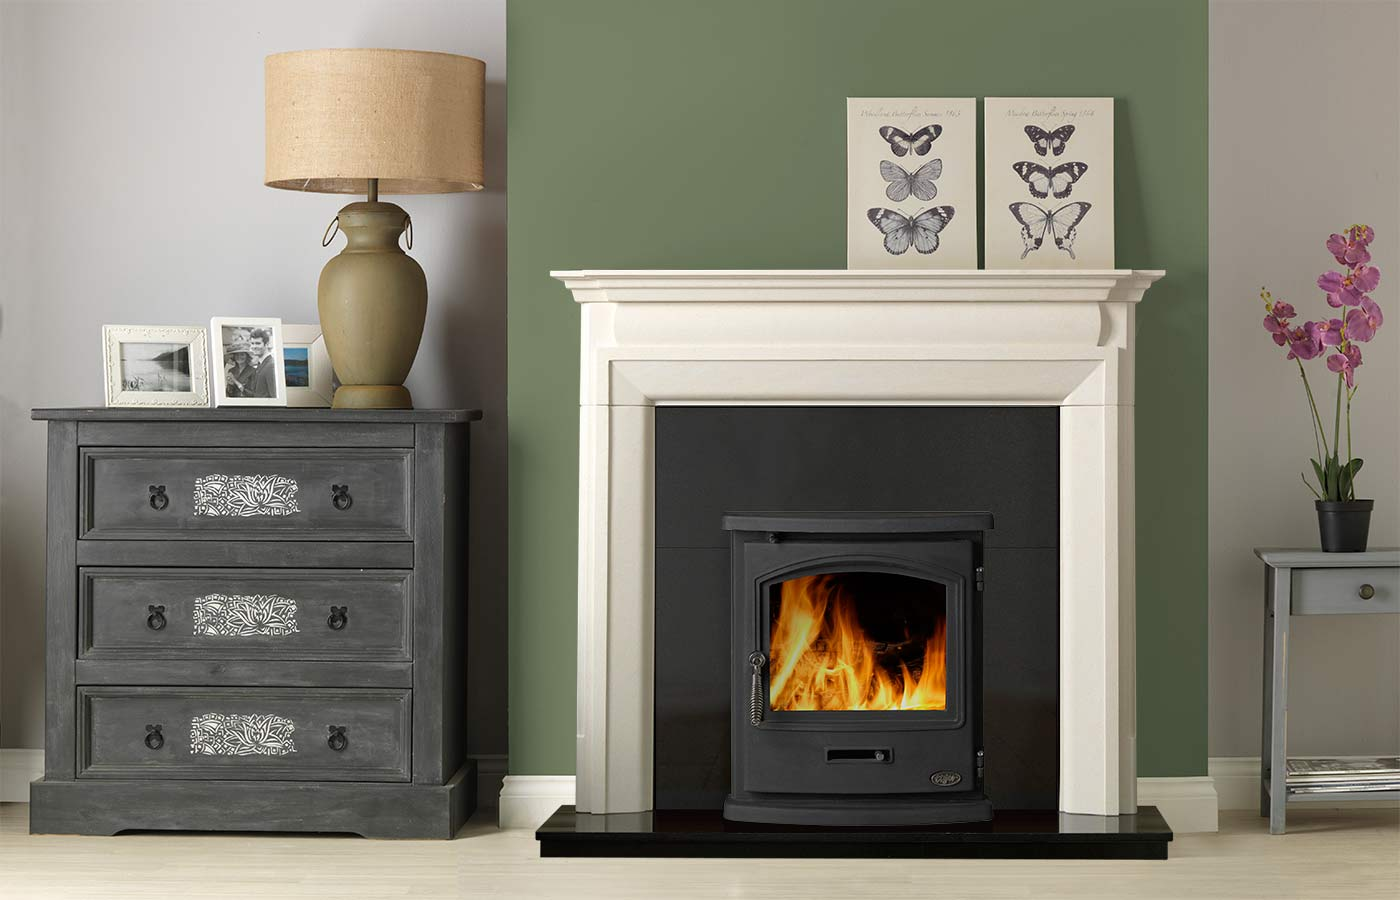 "Swainby 48"" Fireplace Suite in Portuguese Limestone with Tiger Inset Stove"